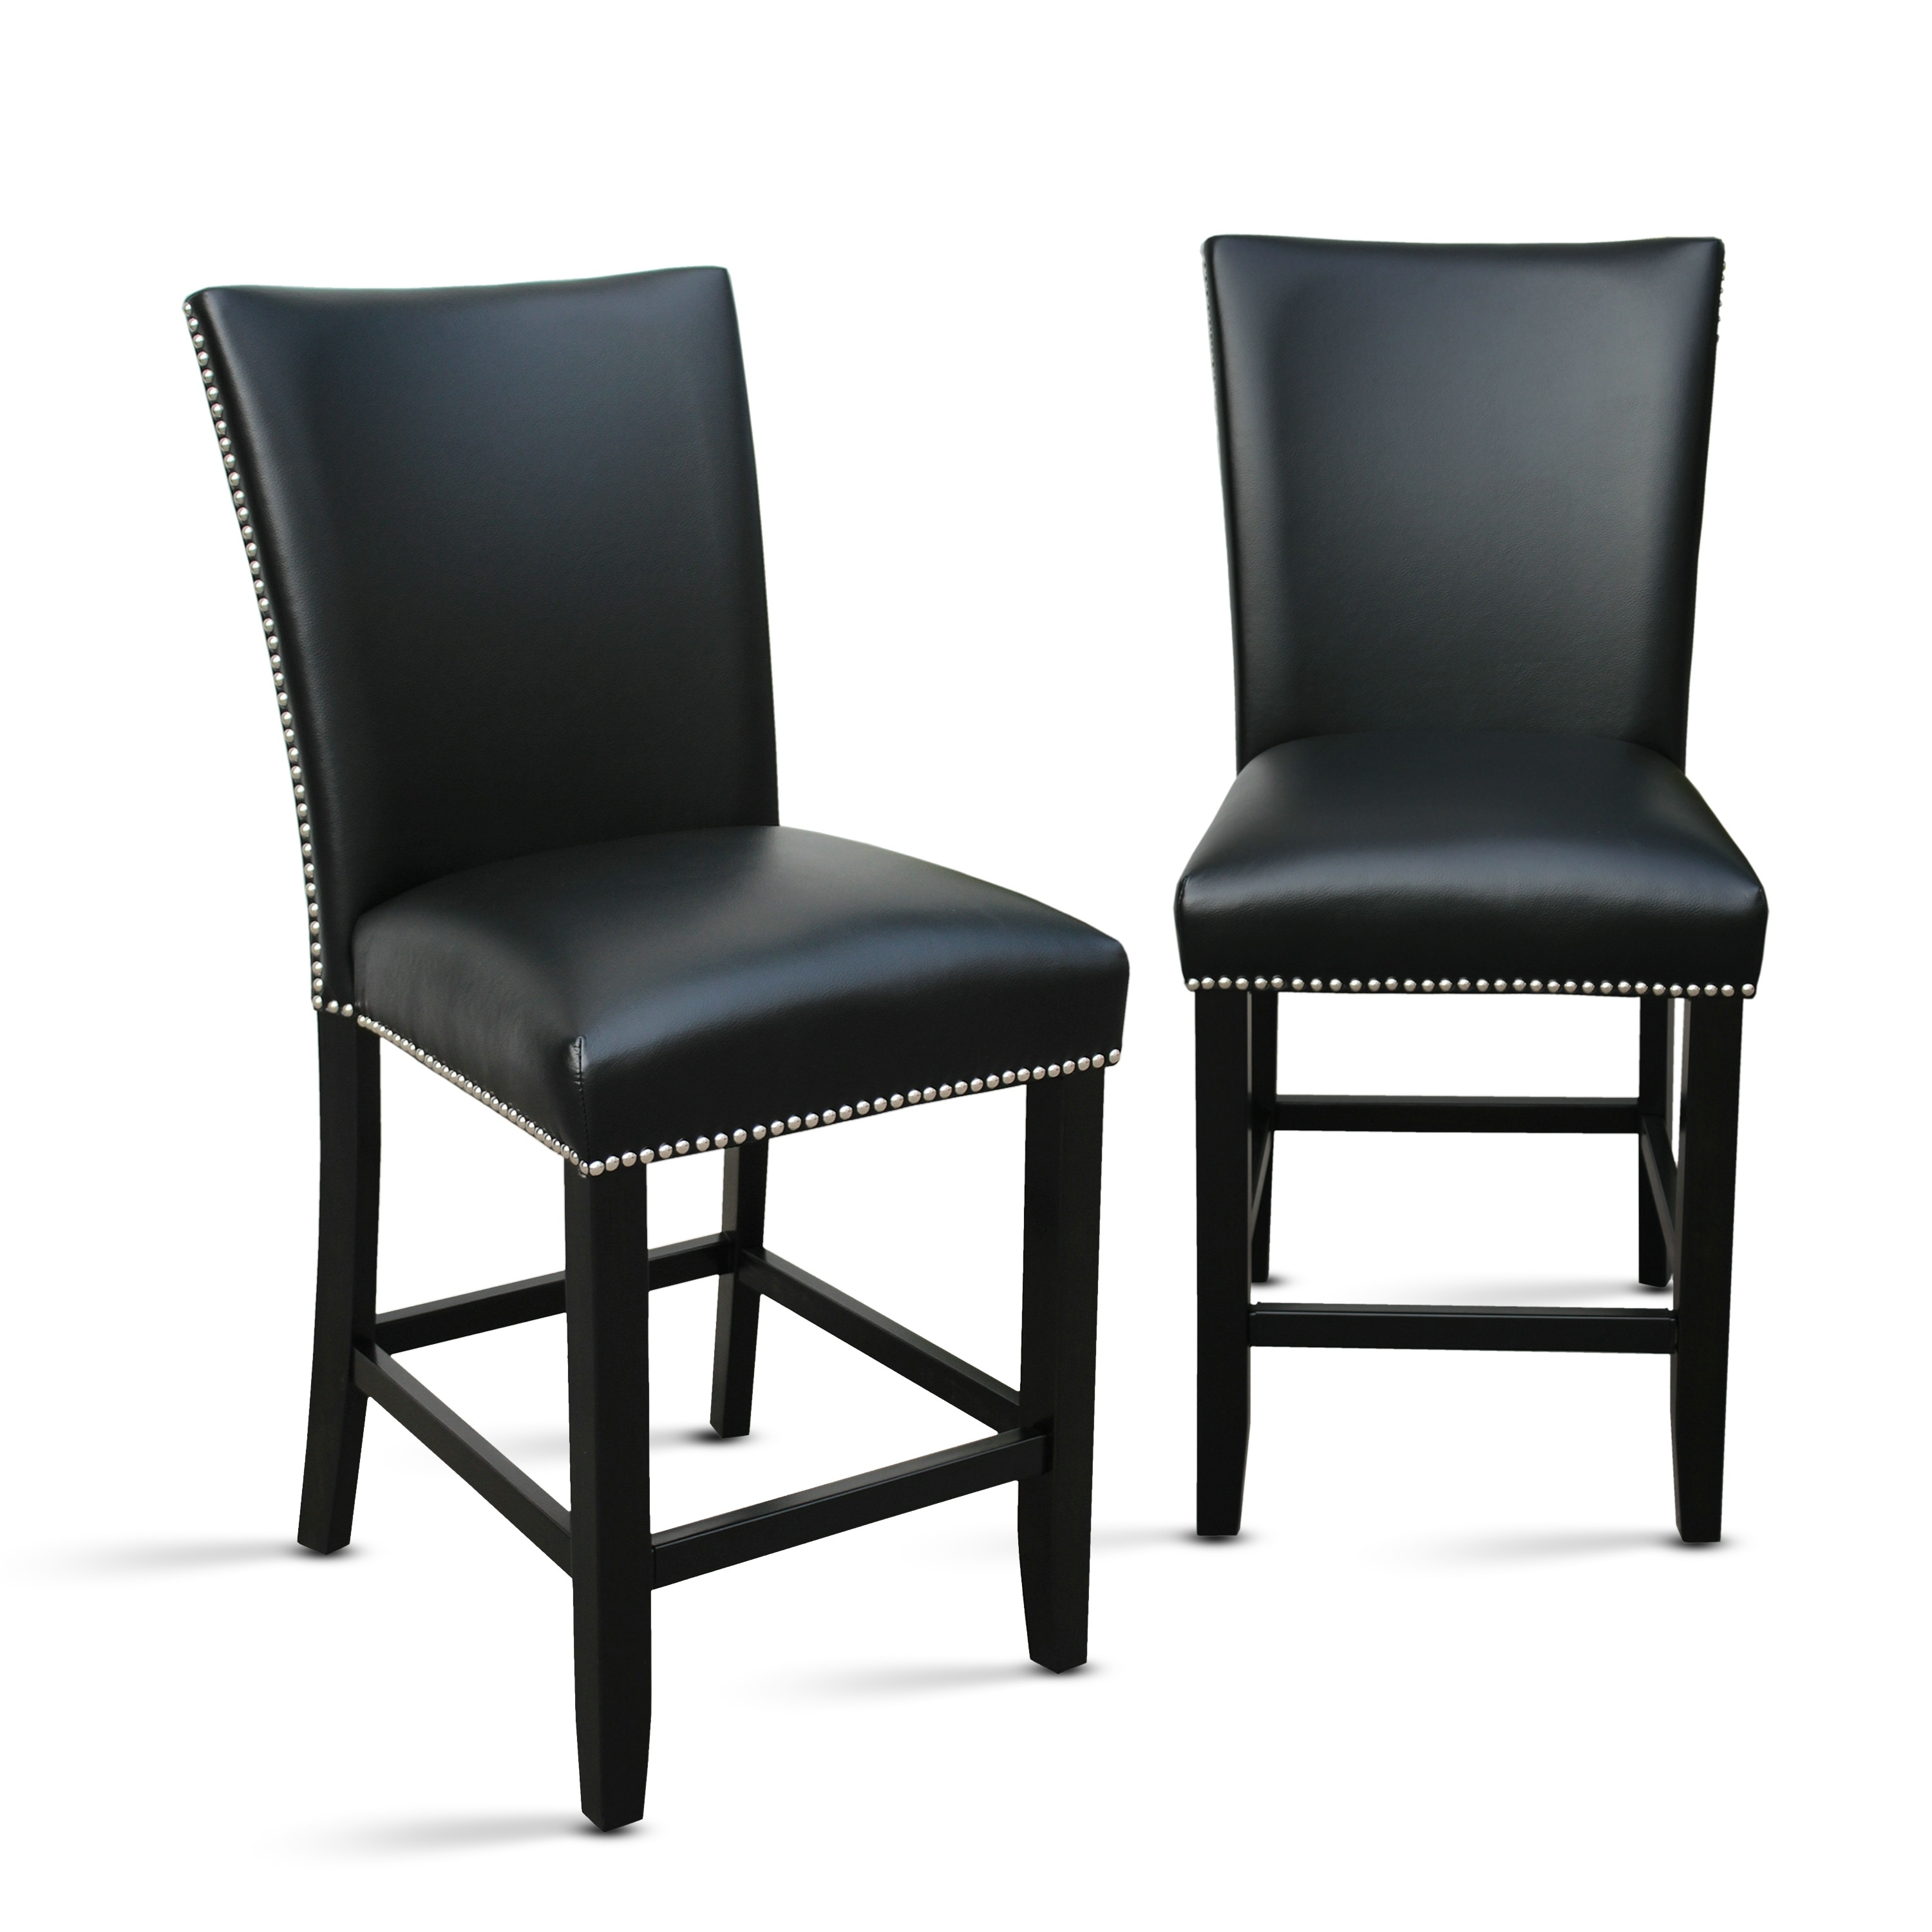 Fabulous Gracewood Hollow Mhlanga Counter Height Dining Chairs Set Of 2 Pdpeps Interior Chair Design Pdpepsorg